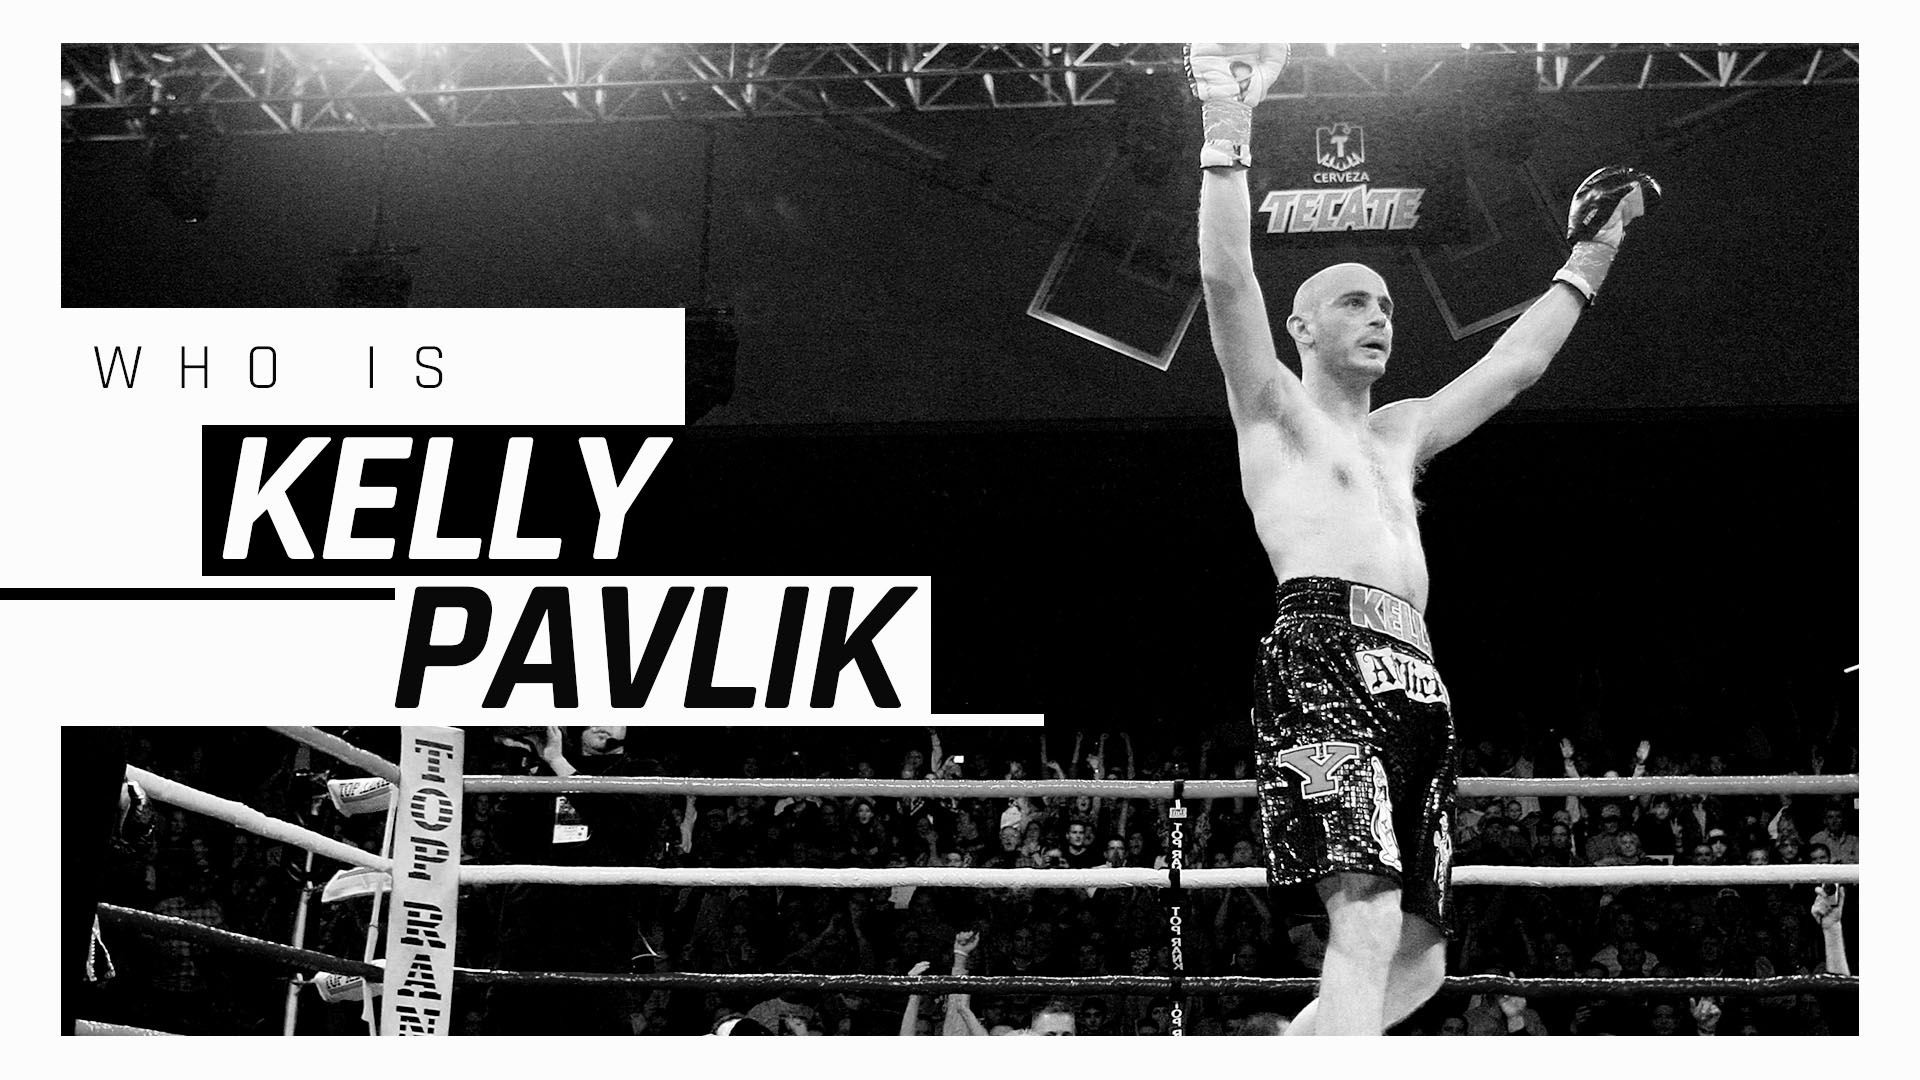 Retired Youngstown boxer Kelly Pavlik recalls his rise, fall and demons